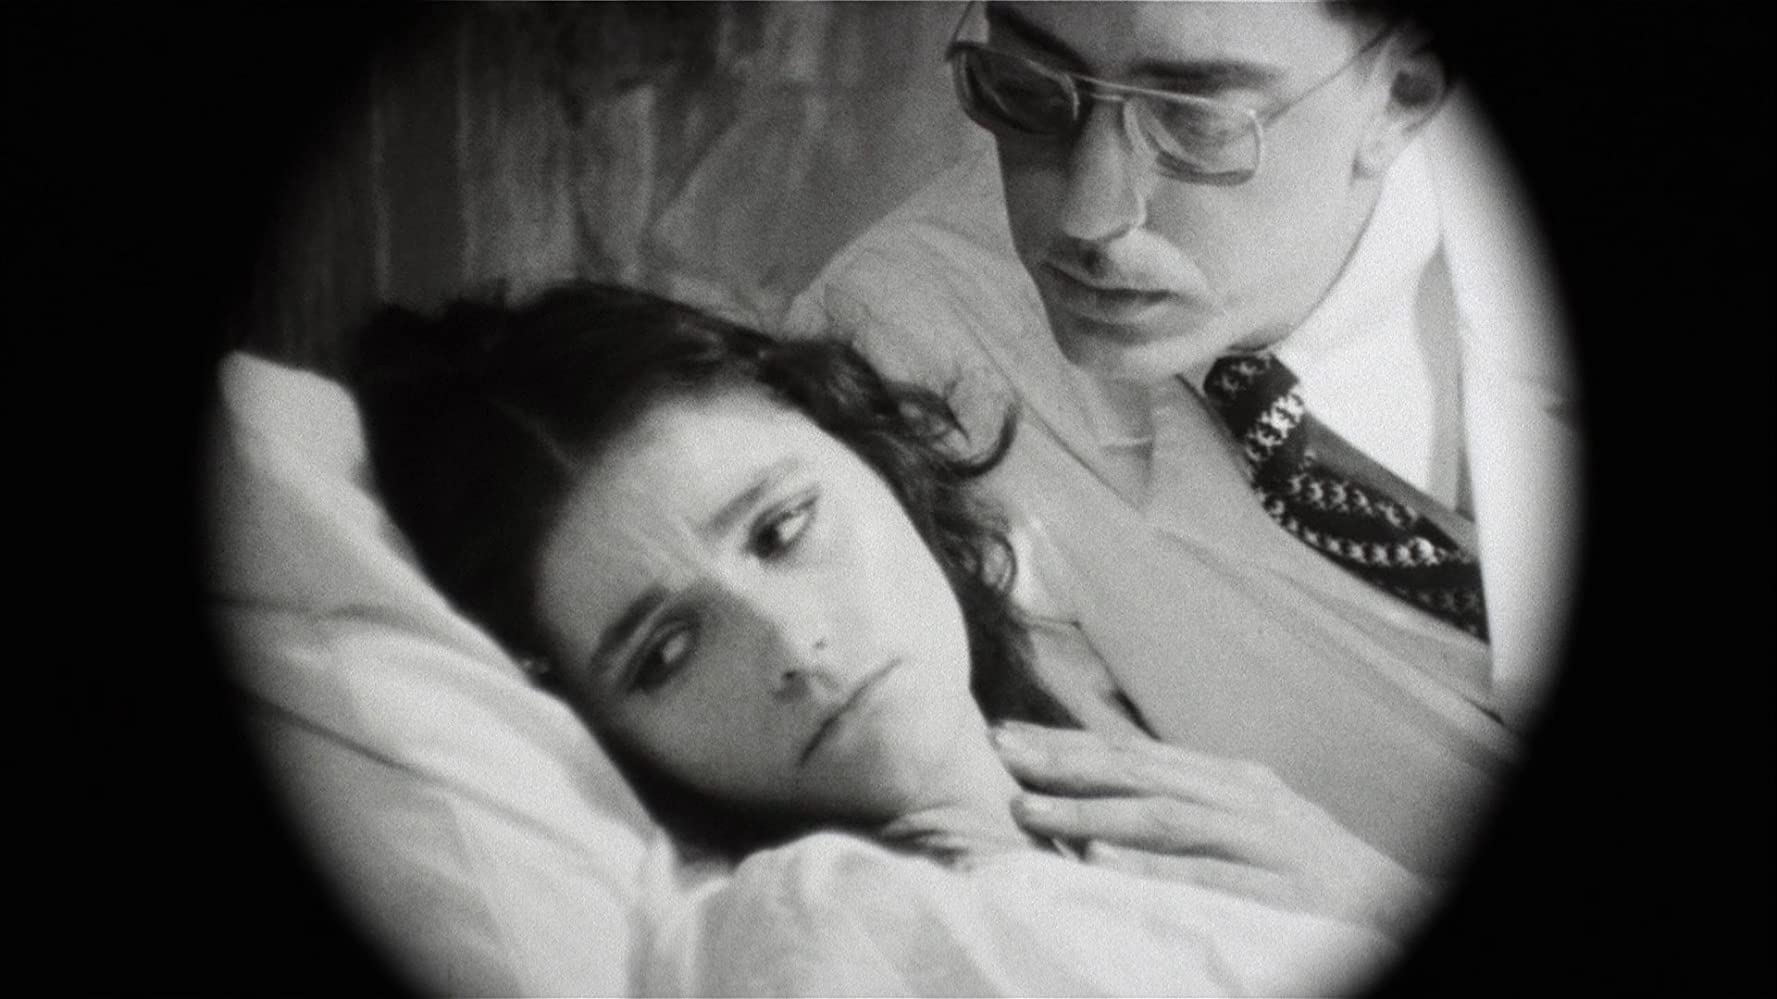 William Finley and Margot Kidder in Sisters (1972)